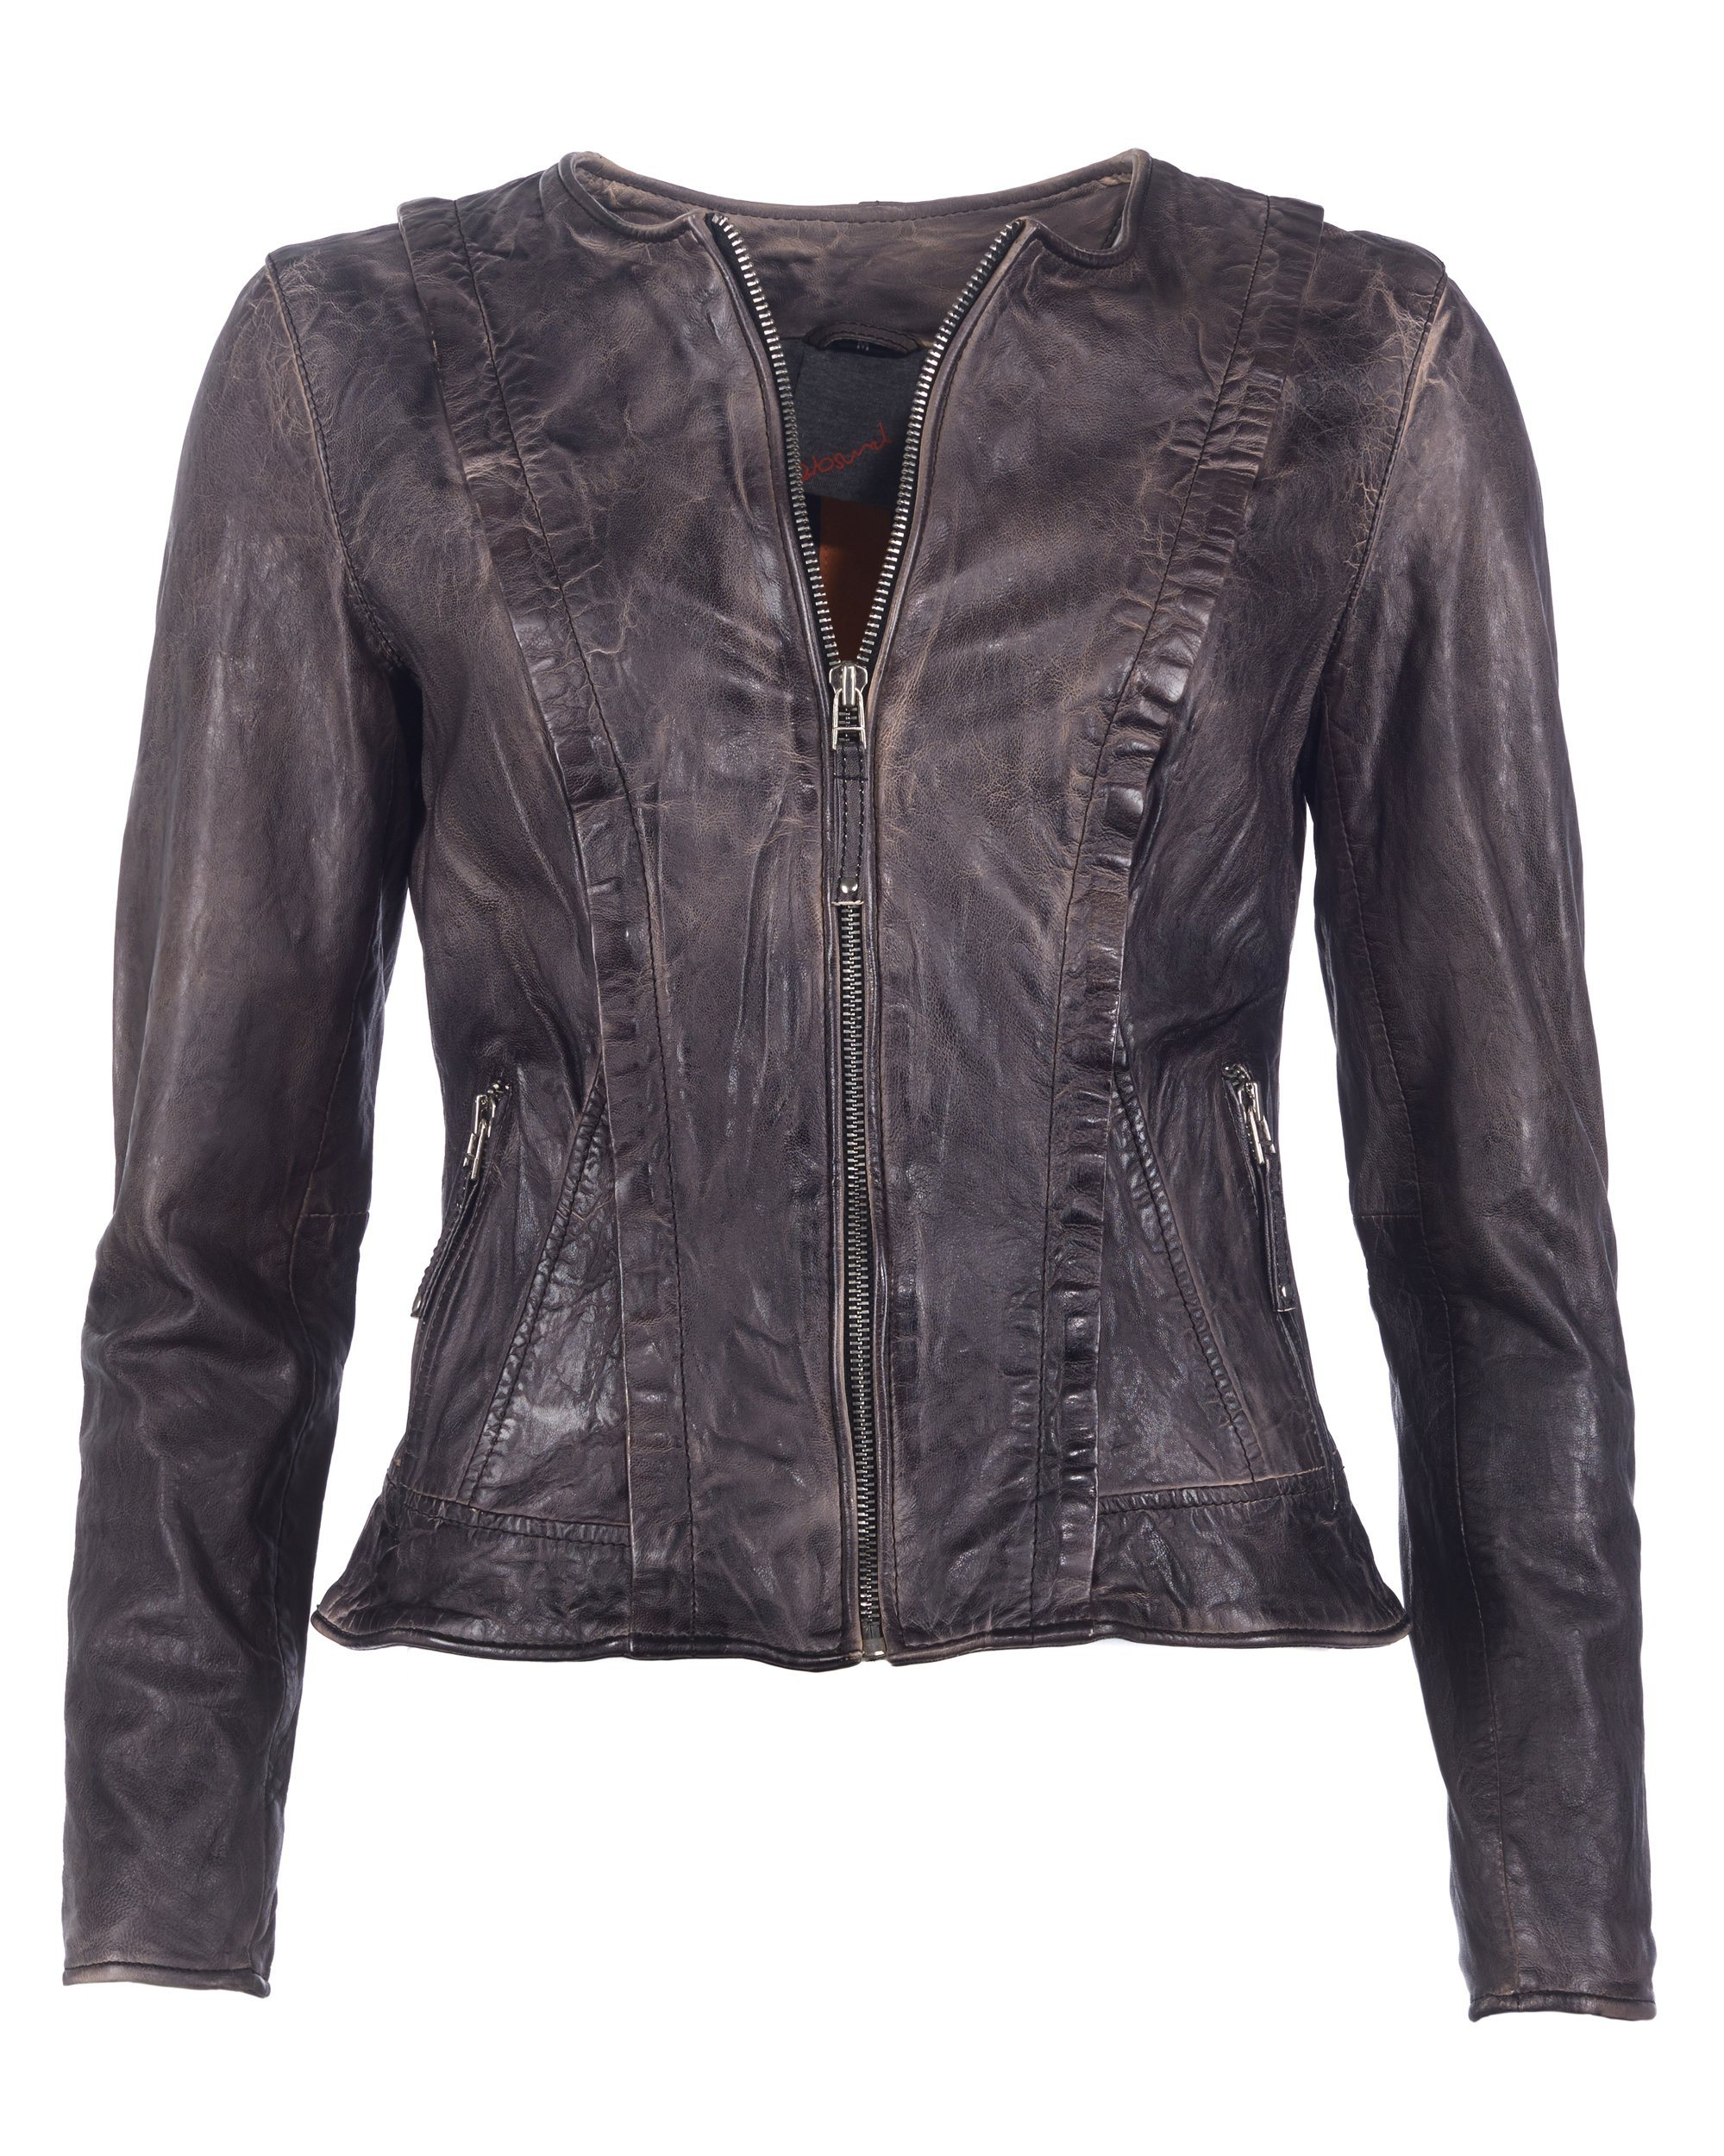 Damen JCC Lederjacke AS16B-L28 grau | 04051845645969